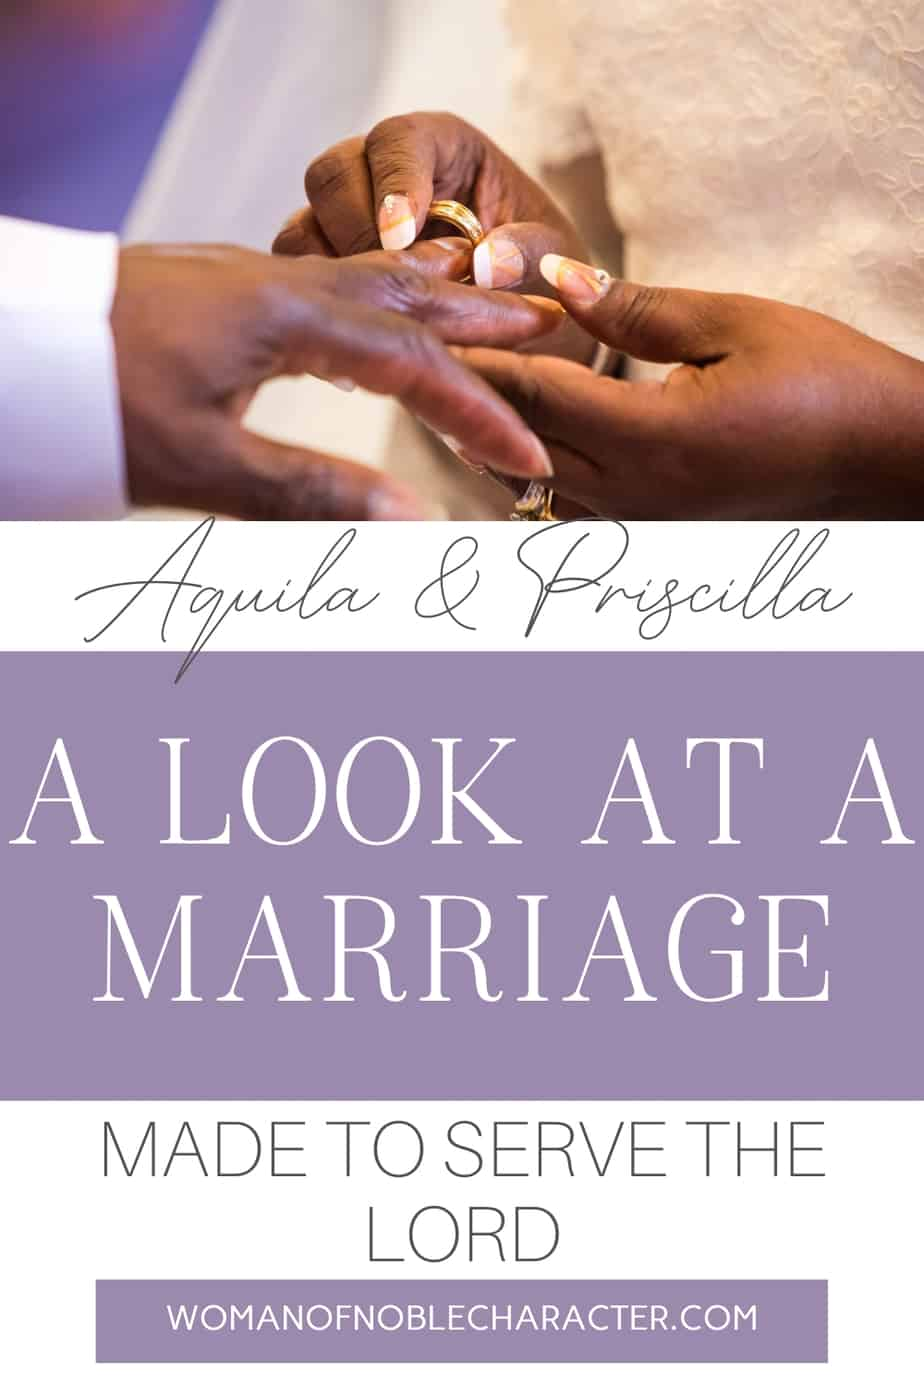 An image of a bride's hand putting a wedding band on a groom's hand, both of them black. A text overlay says Aquila and Priscilla: A Look at a Marriage Made to Serve the Lord